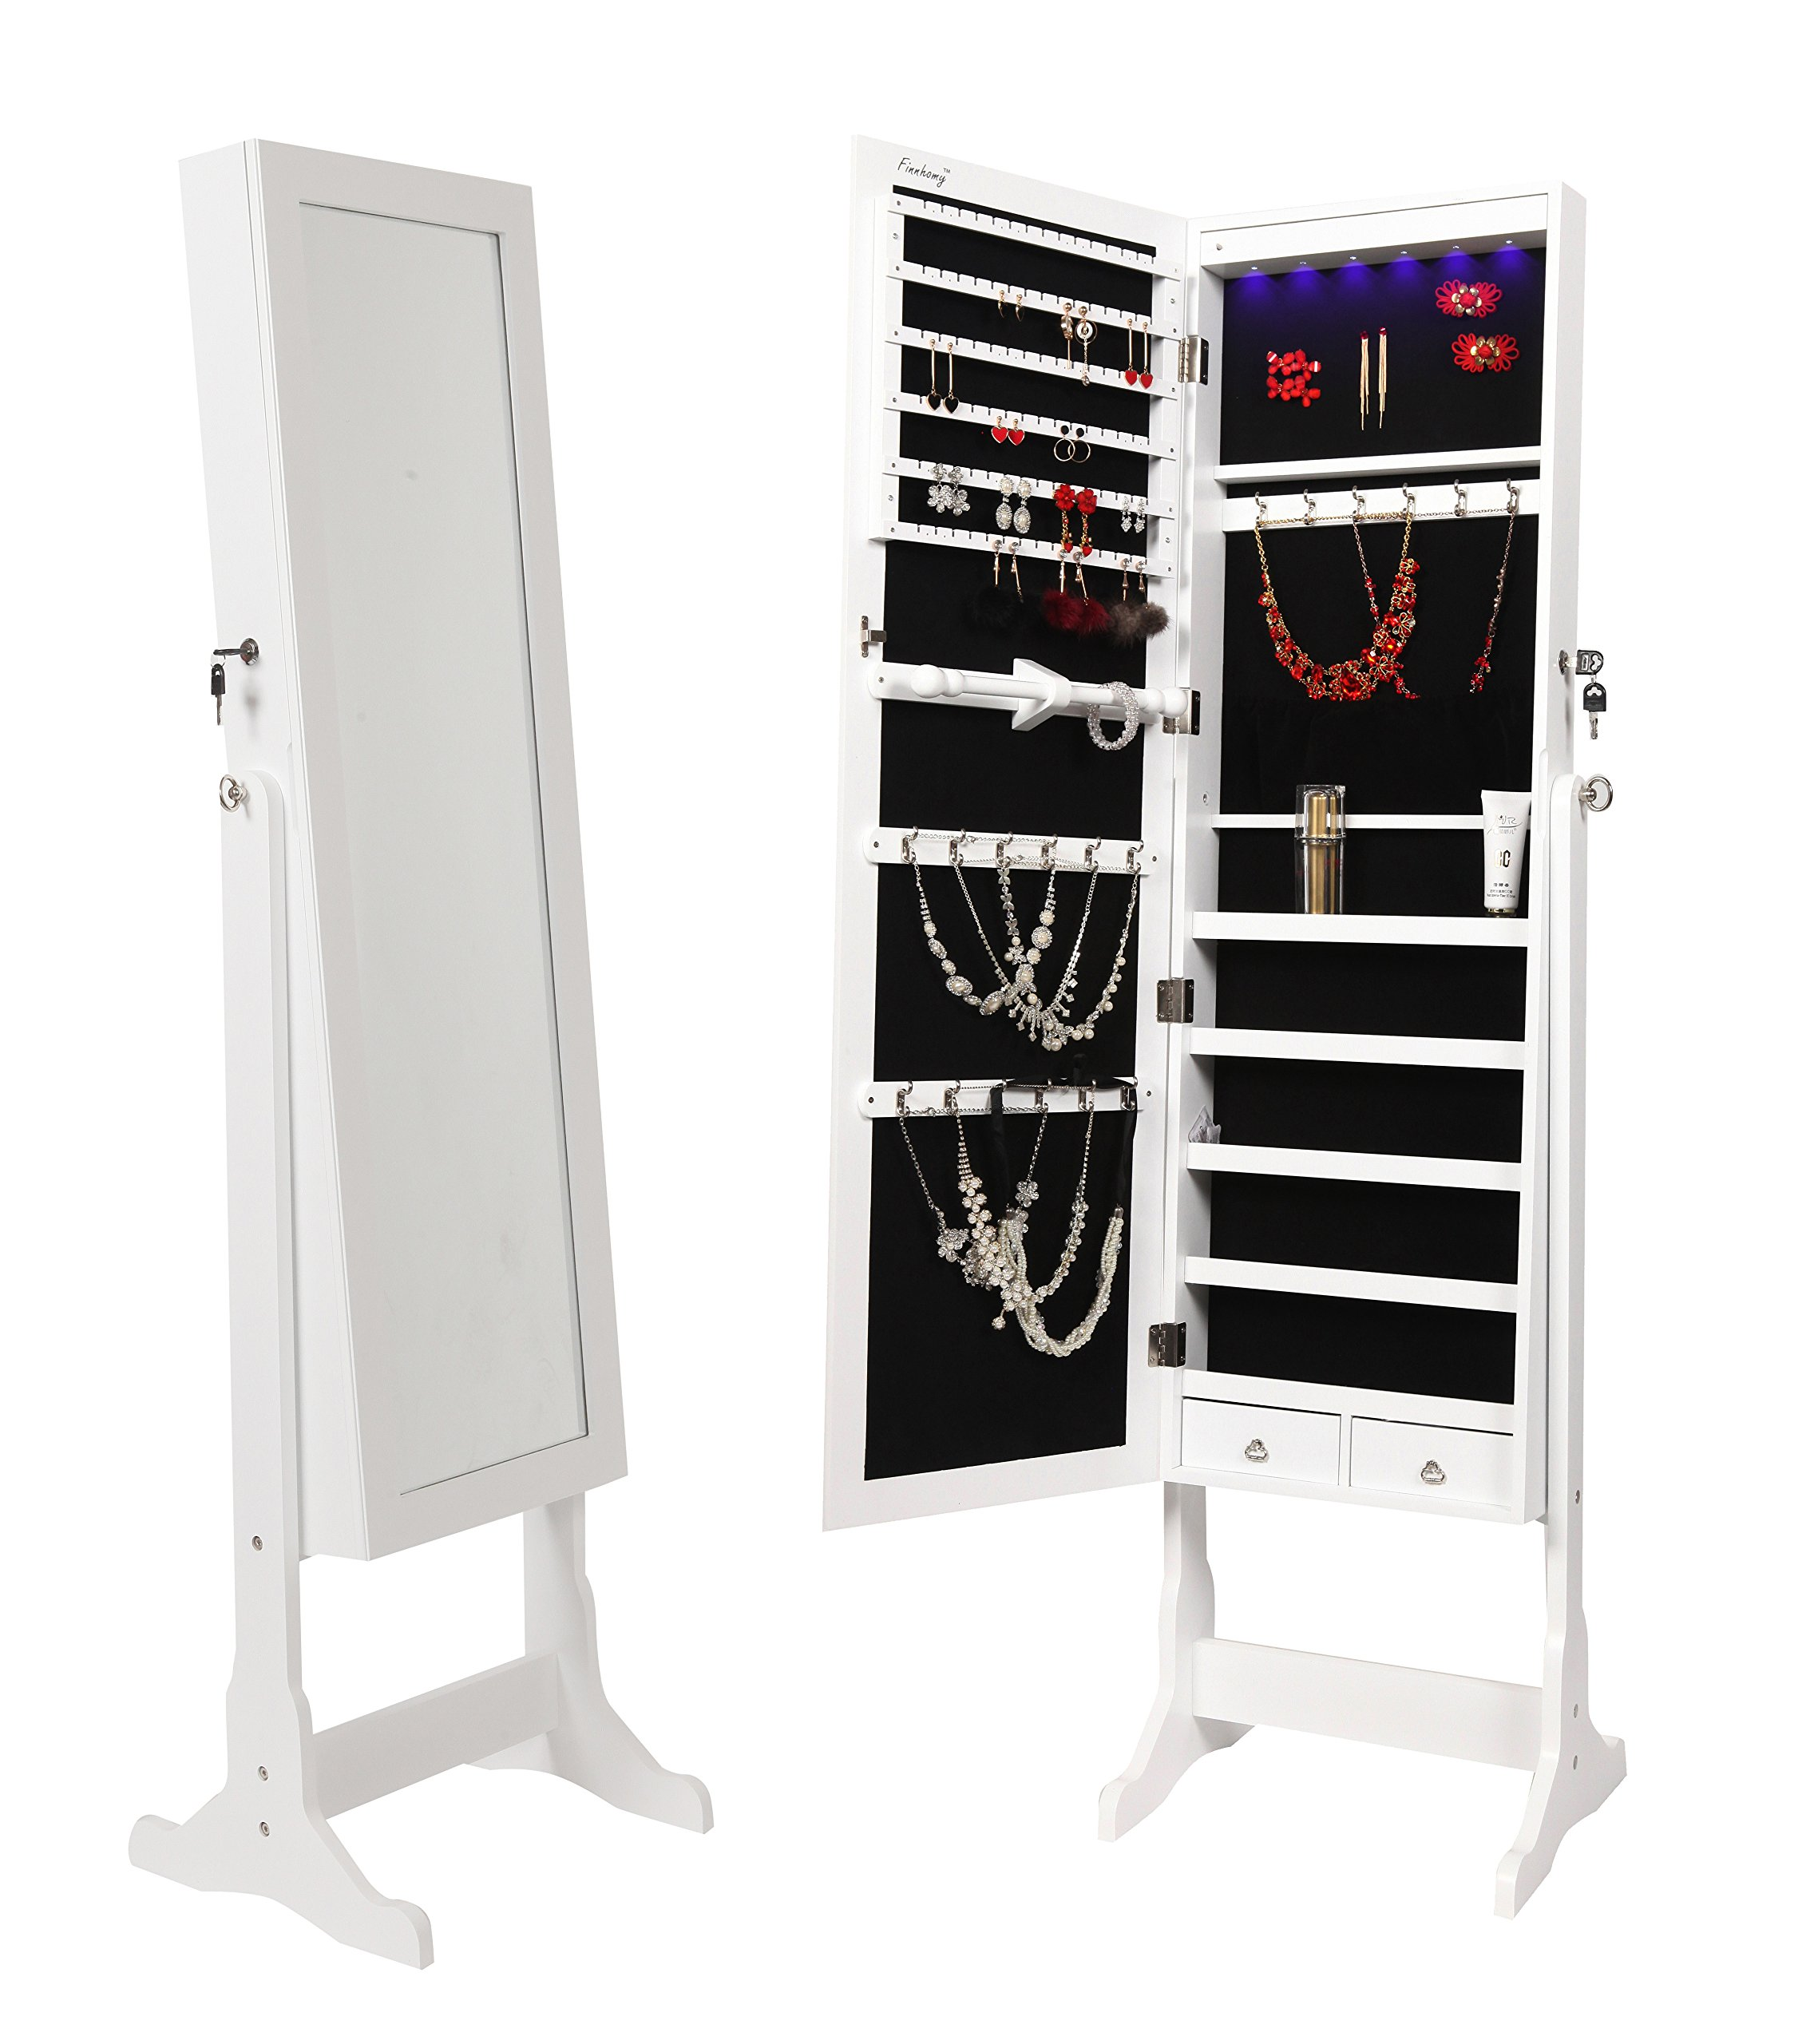 FINNHOMY Lockable Mirrored Jewelry Armoire Storage Organizer Free Standing Makeup Cabinet Holder w LED Light Stand for Ring Necklace Earring Cosmetics Broach Bracelet, White